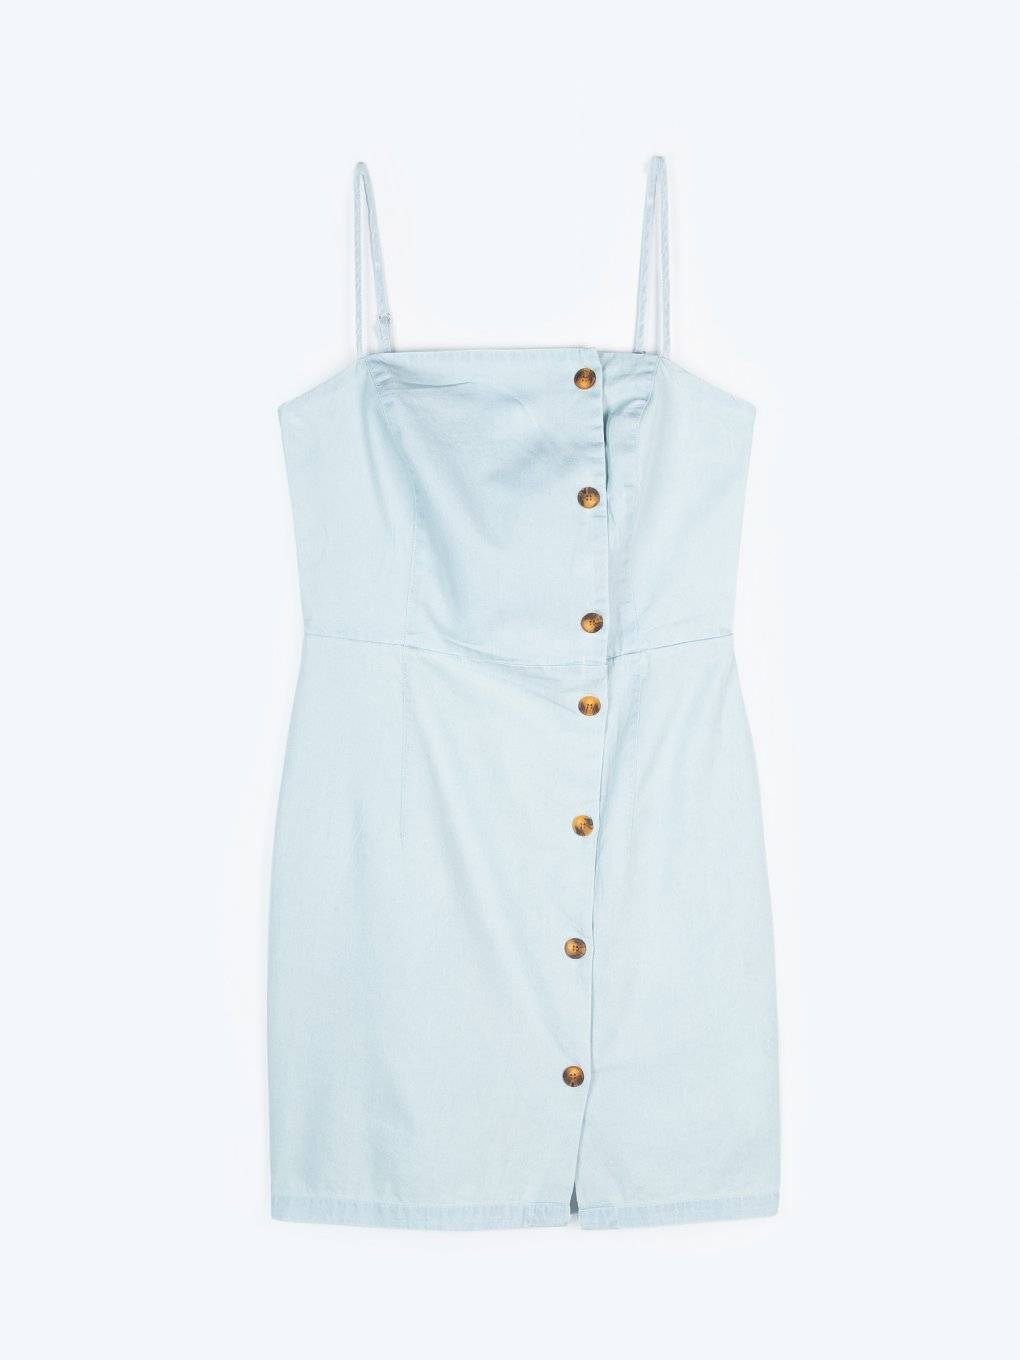 Cotton button down dress with pockets